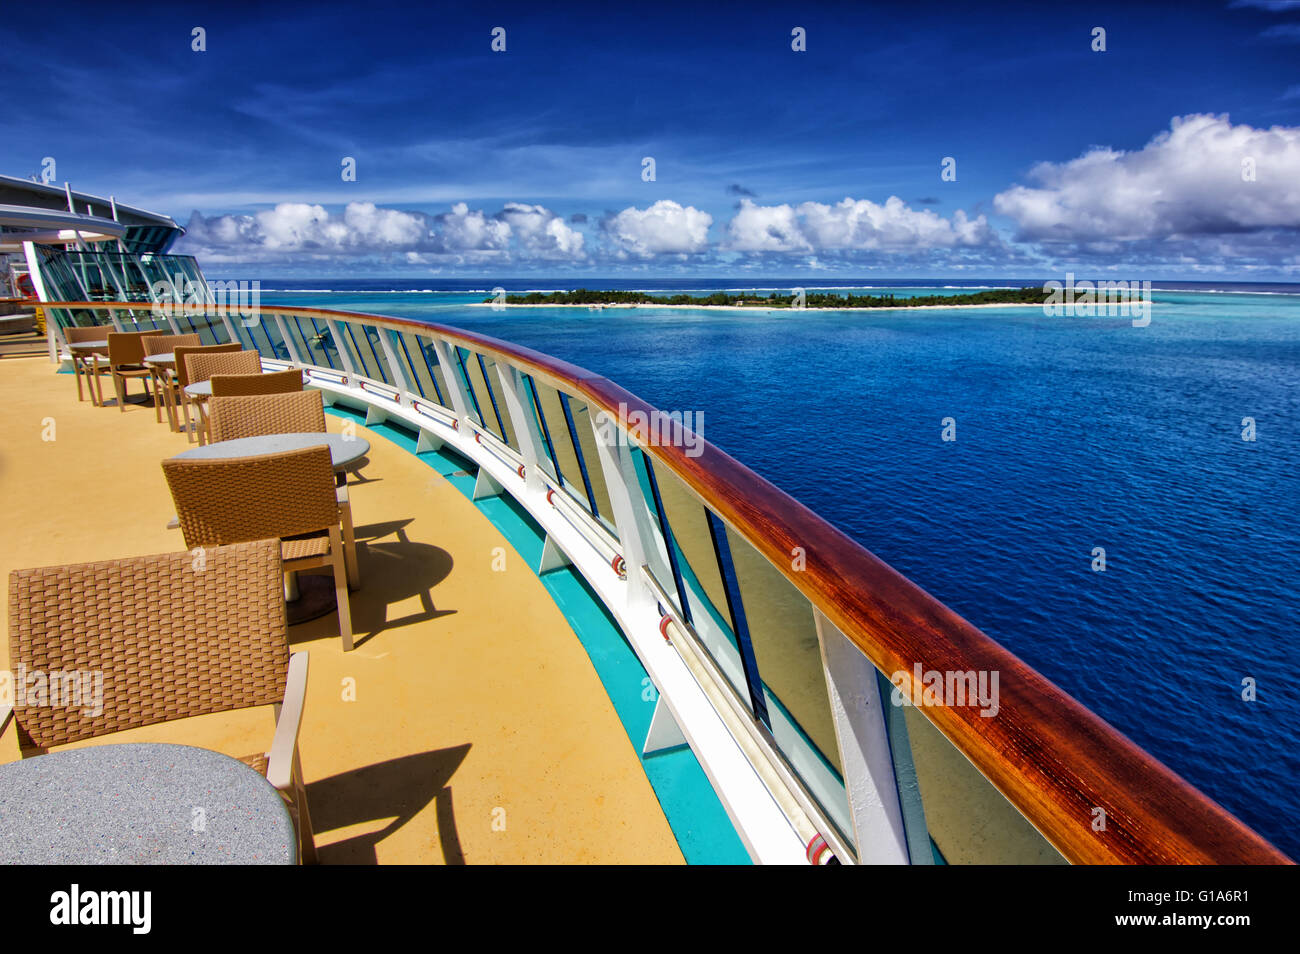 View from the top deck of a cruise ship to Mystery Island, Vanuatu - Stock Image